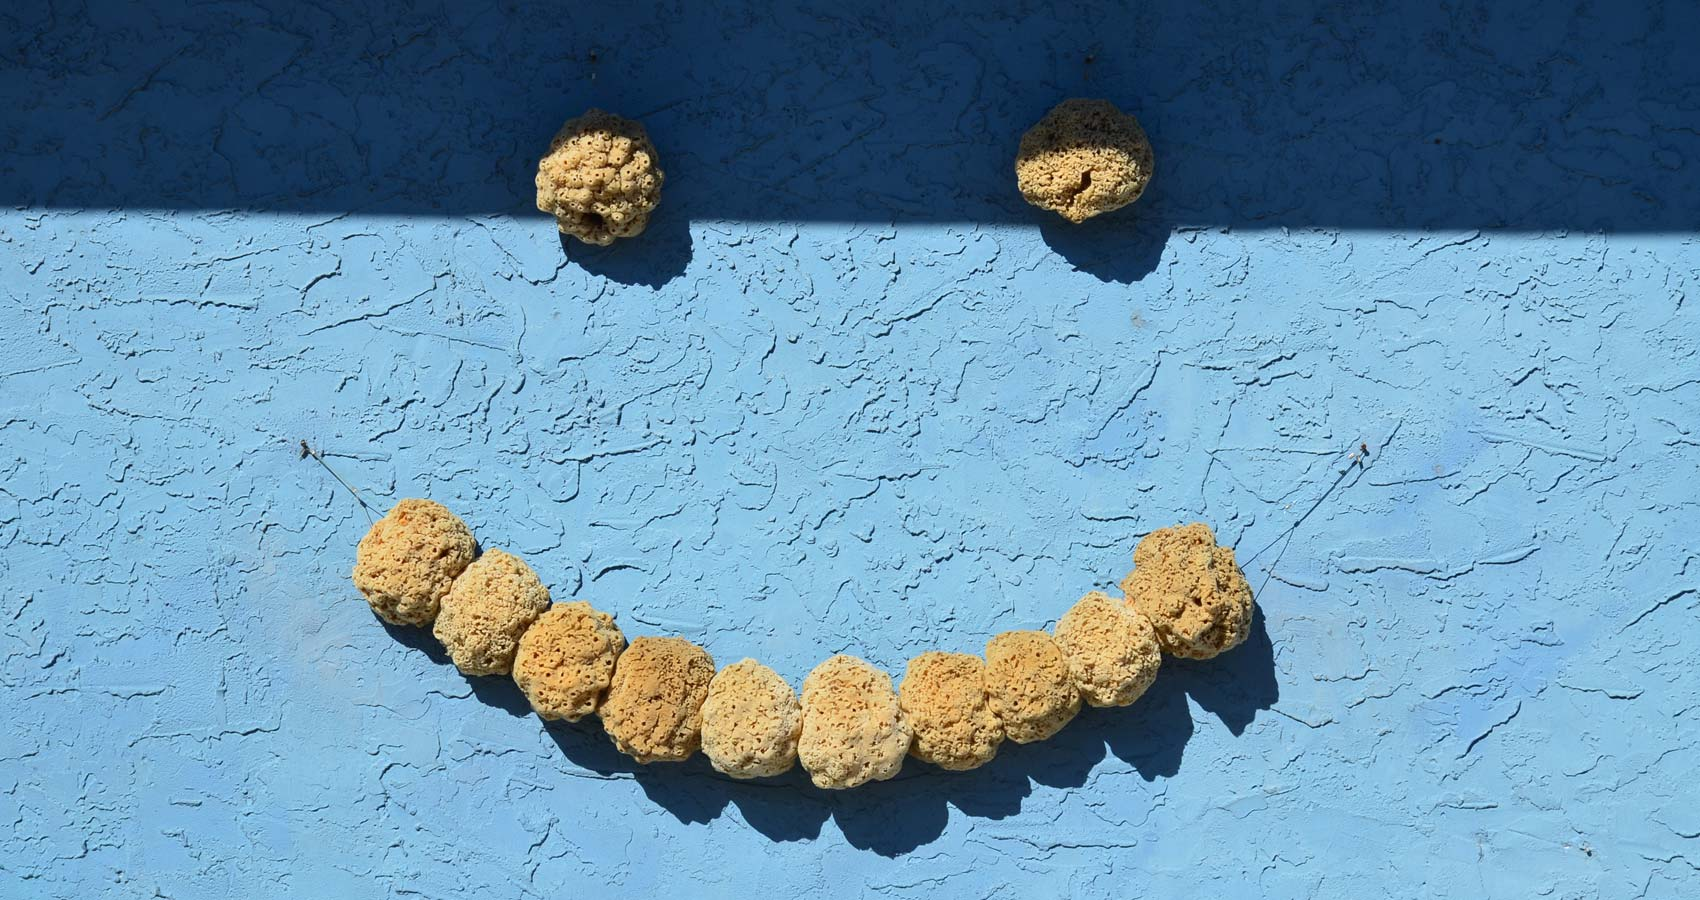 The Smiley-Faced Sponge, flash fiction by Ayvan Saila at Spillwords.com